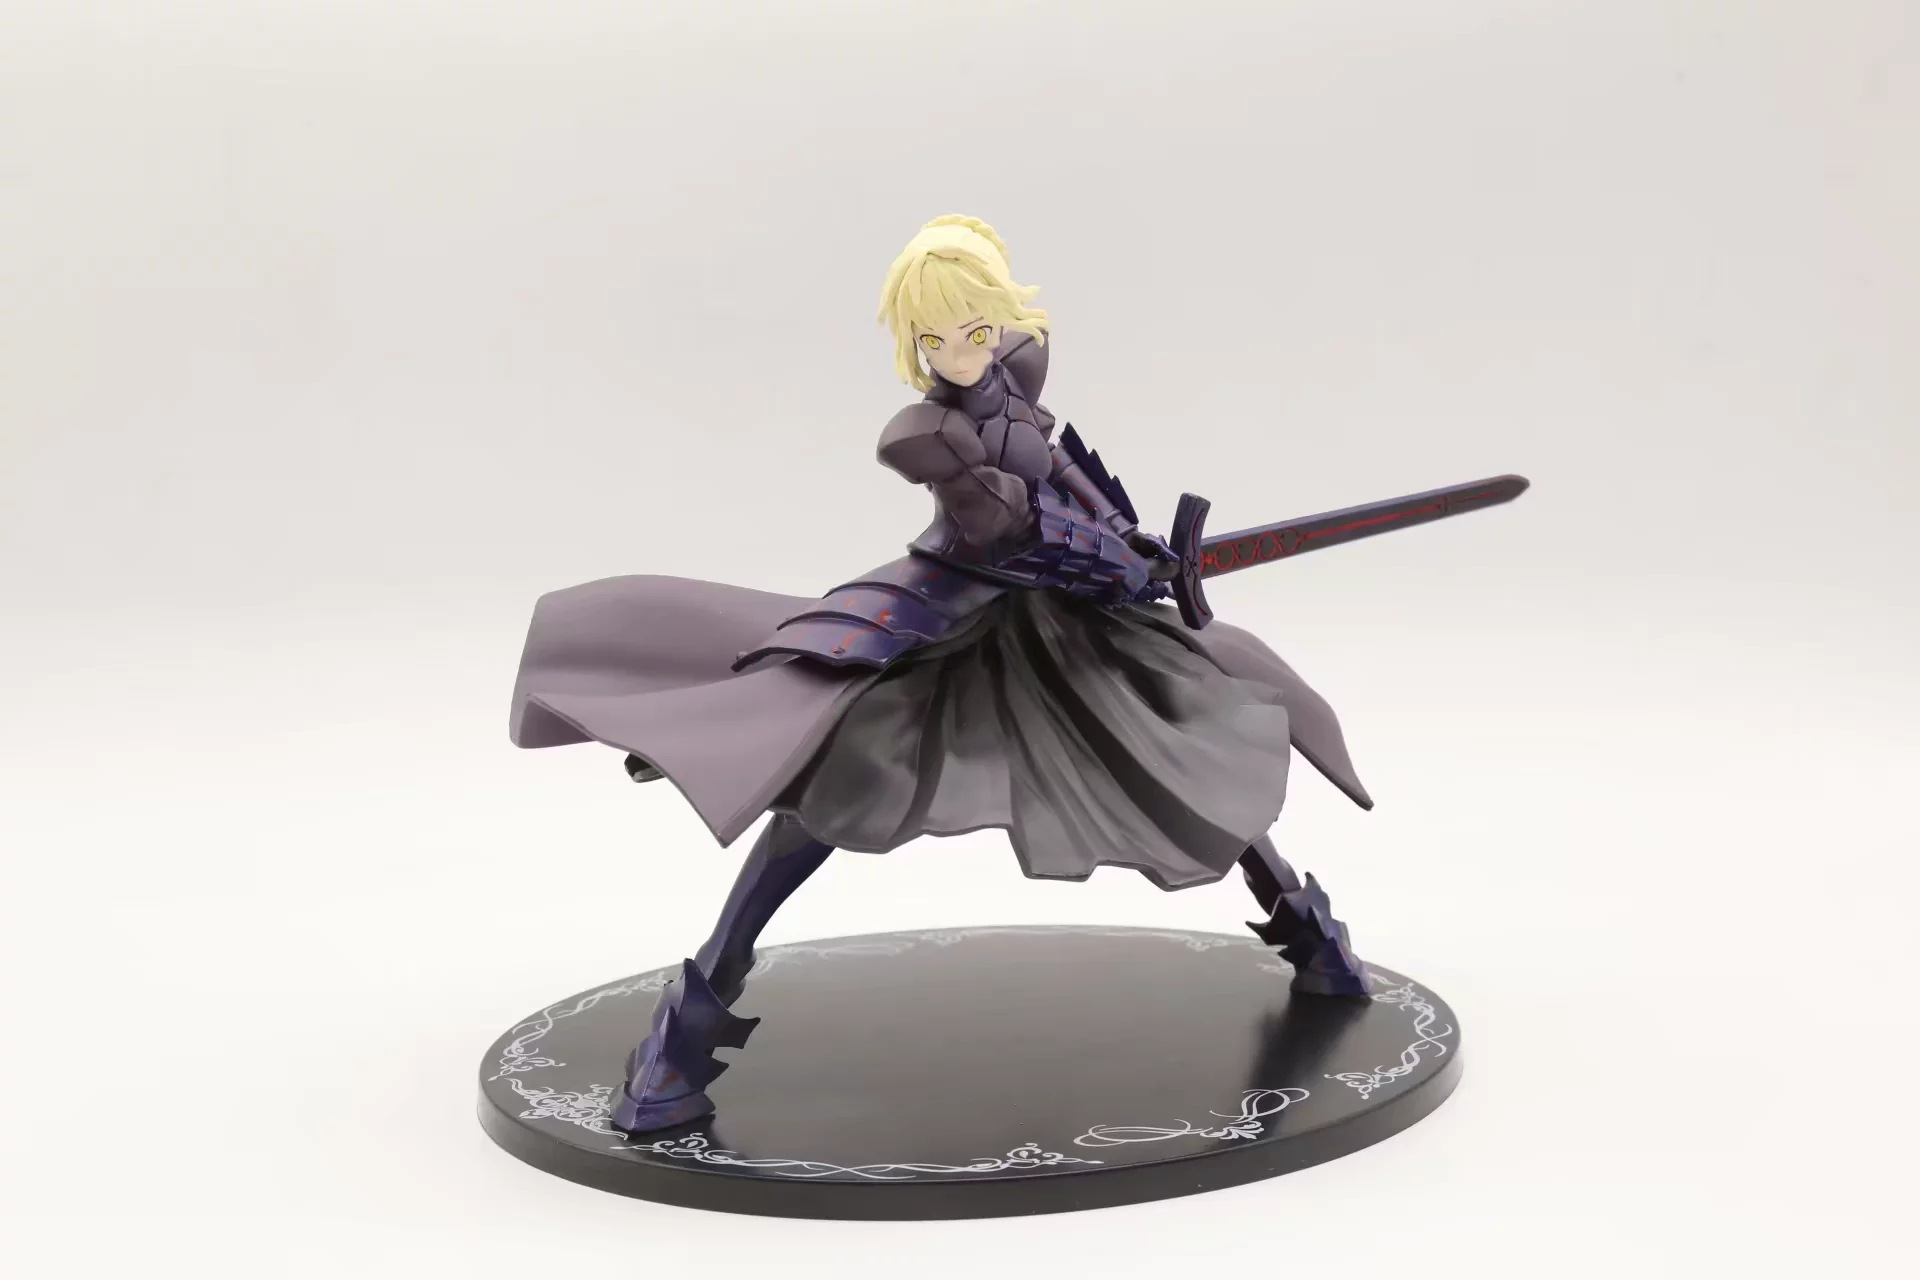 20CM pvc Japanese anime figure fate/stay night Saber Arturia Pendragon holding sword action figure collectible model toys le fate топ